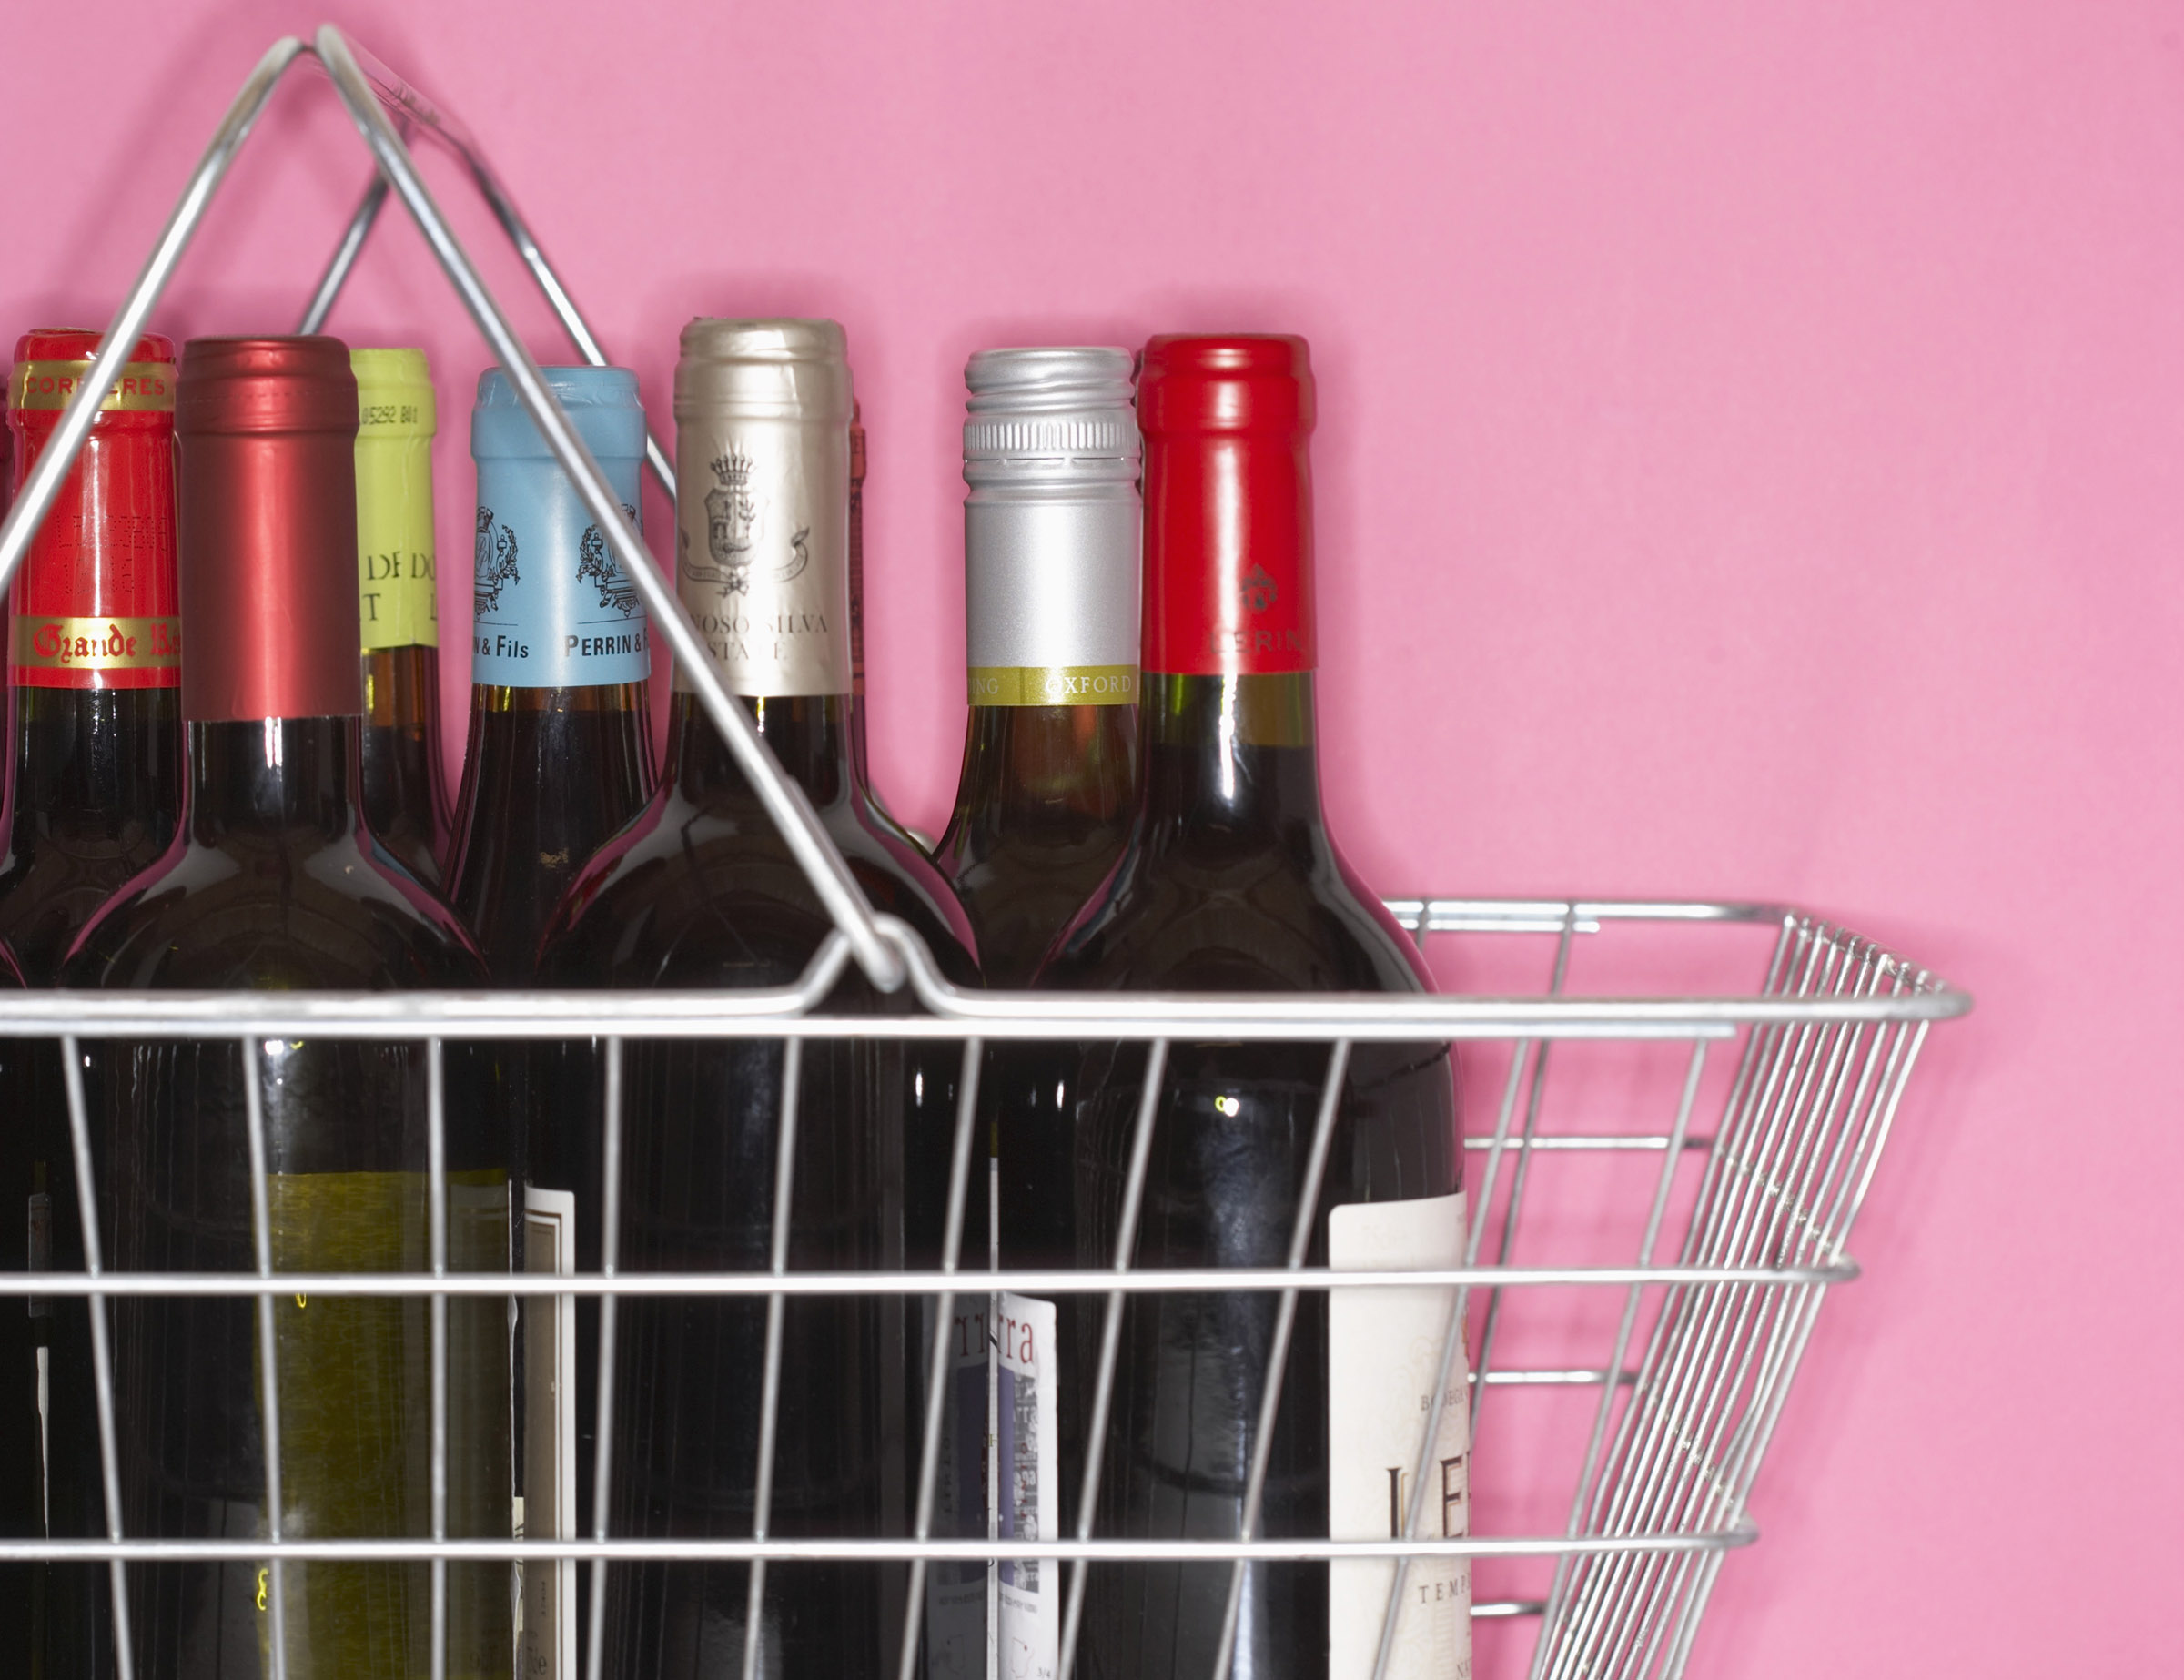 A shopping basket filled with bottles of wine